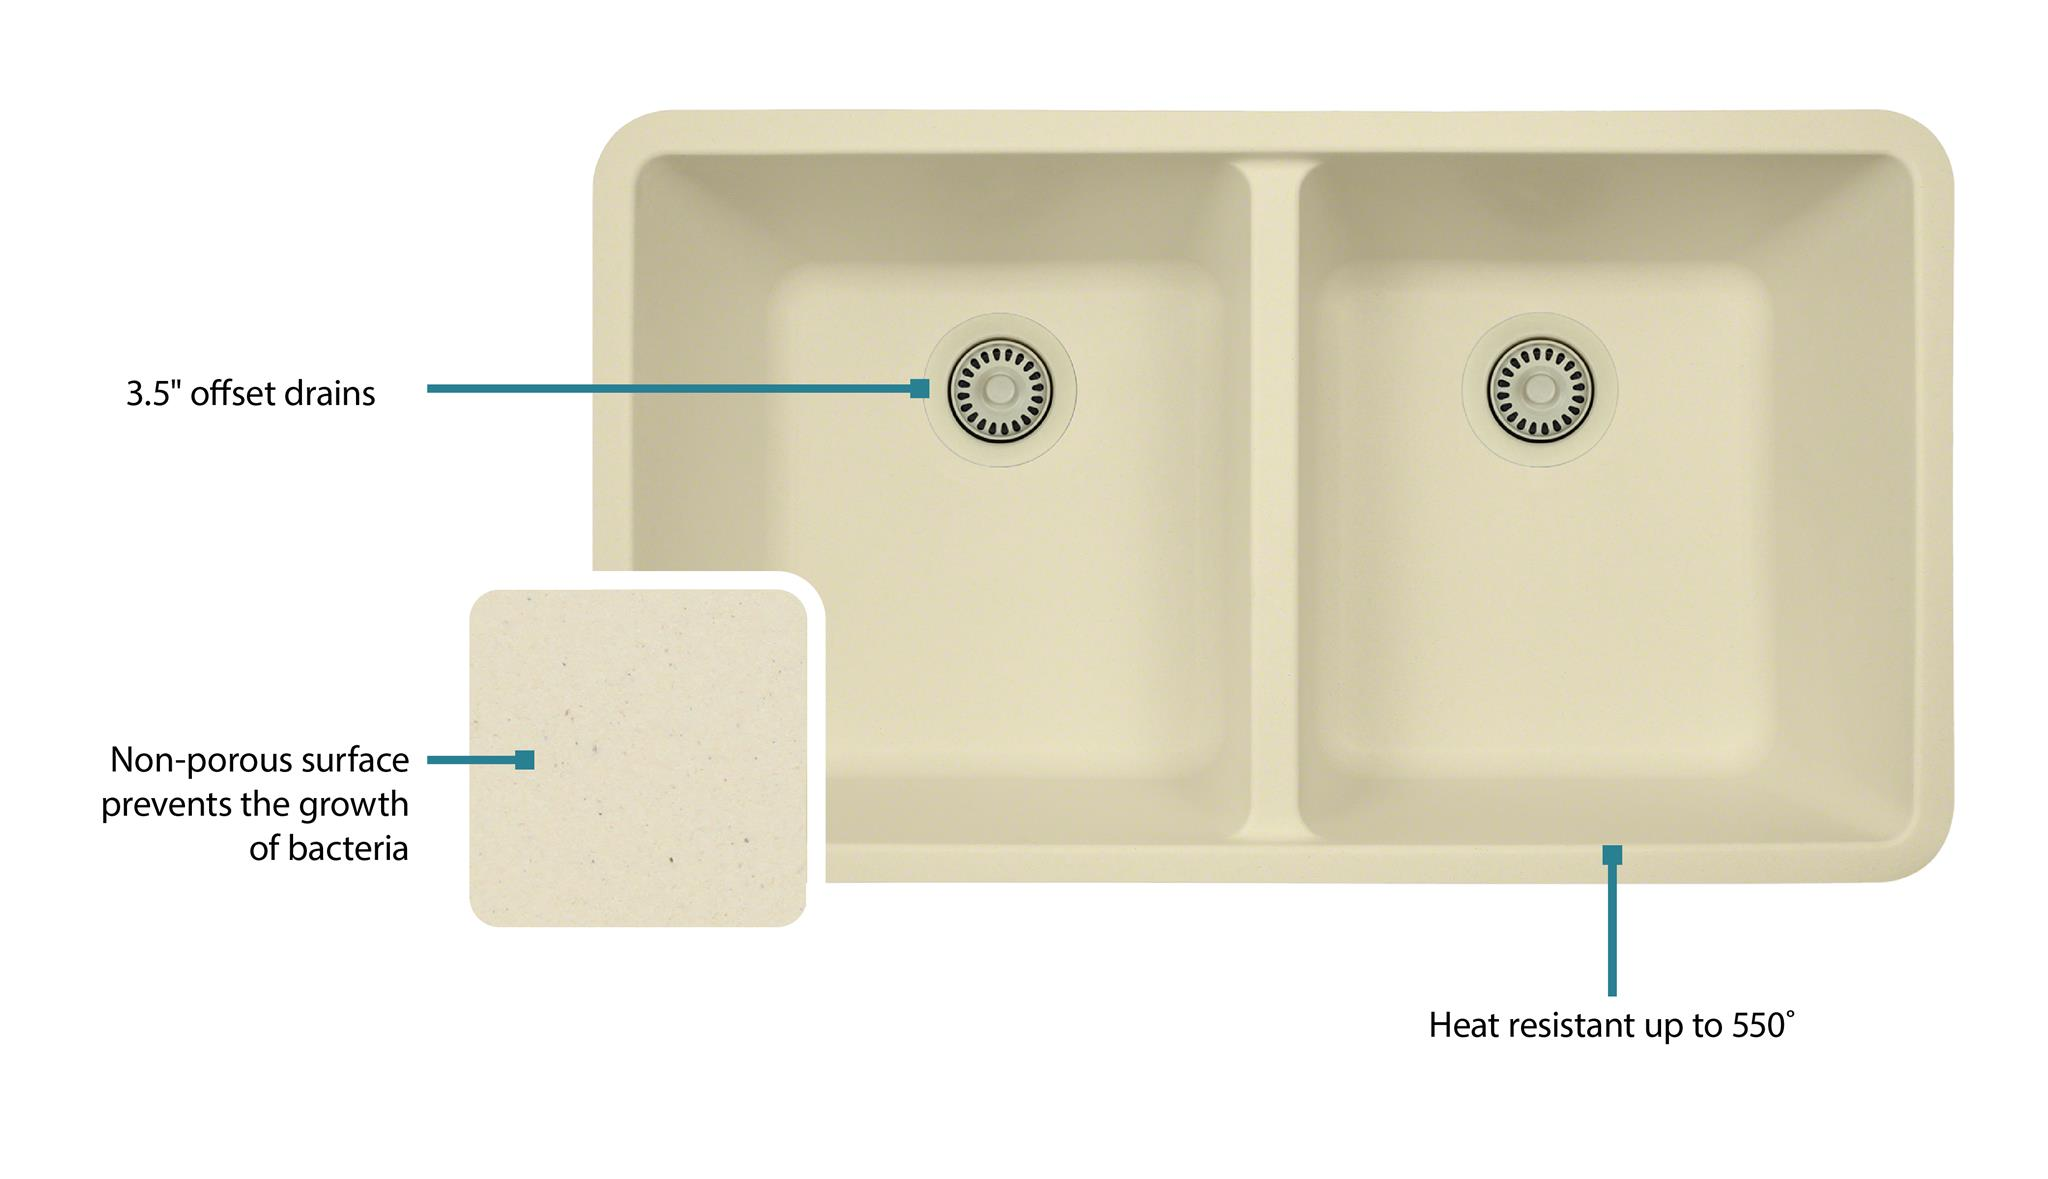 Stainless steel sinks and faucets for kitchens and baths antibacterial workwithnaturefo